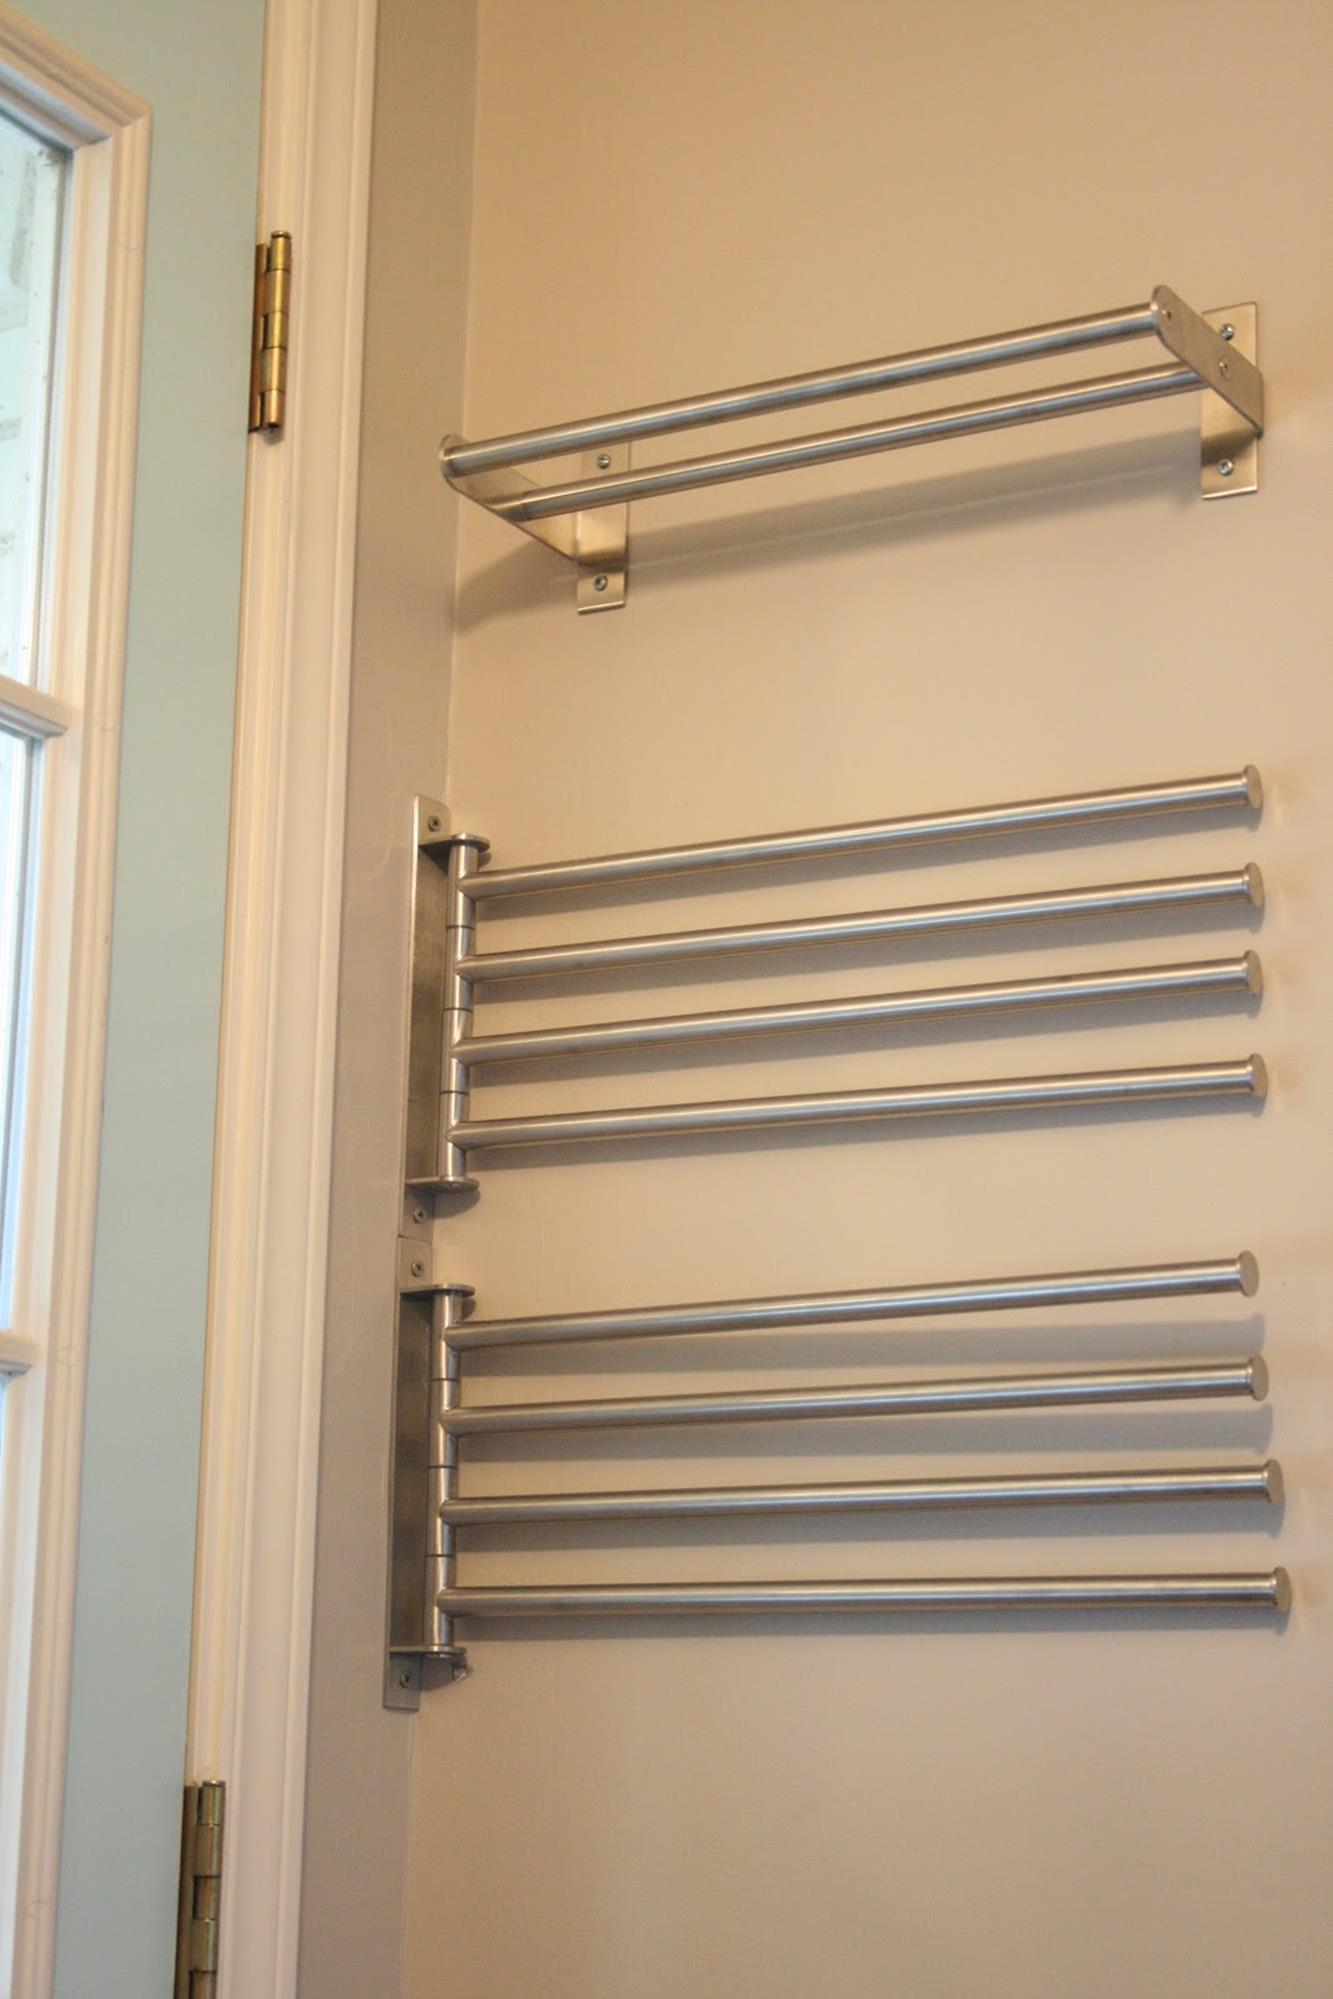 Laundry Room Hanging Rack Ideas 19